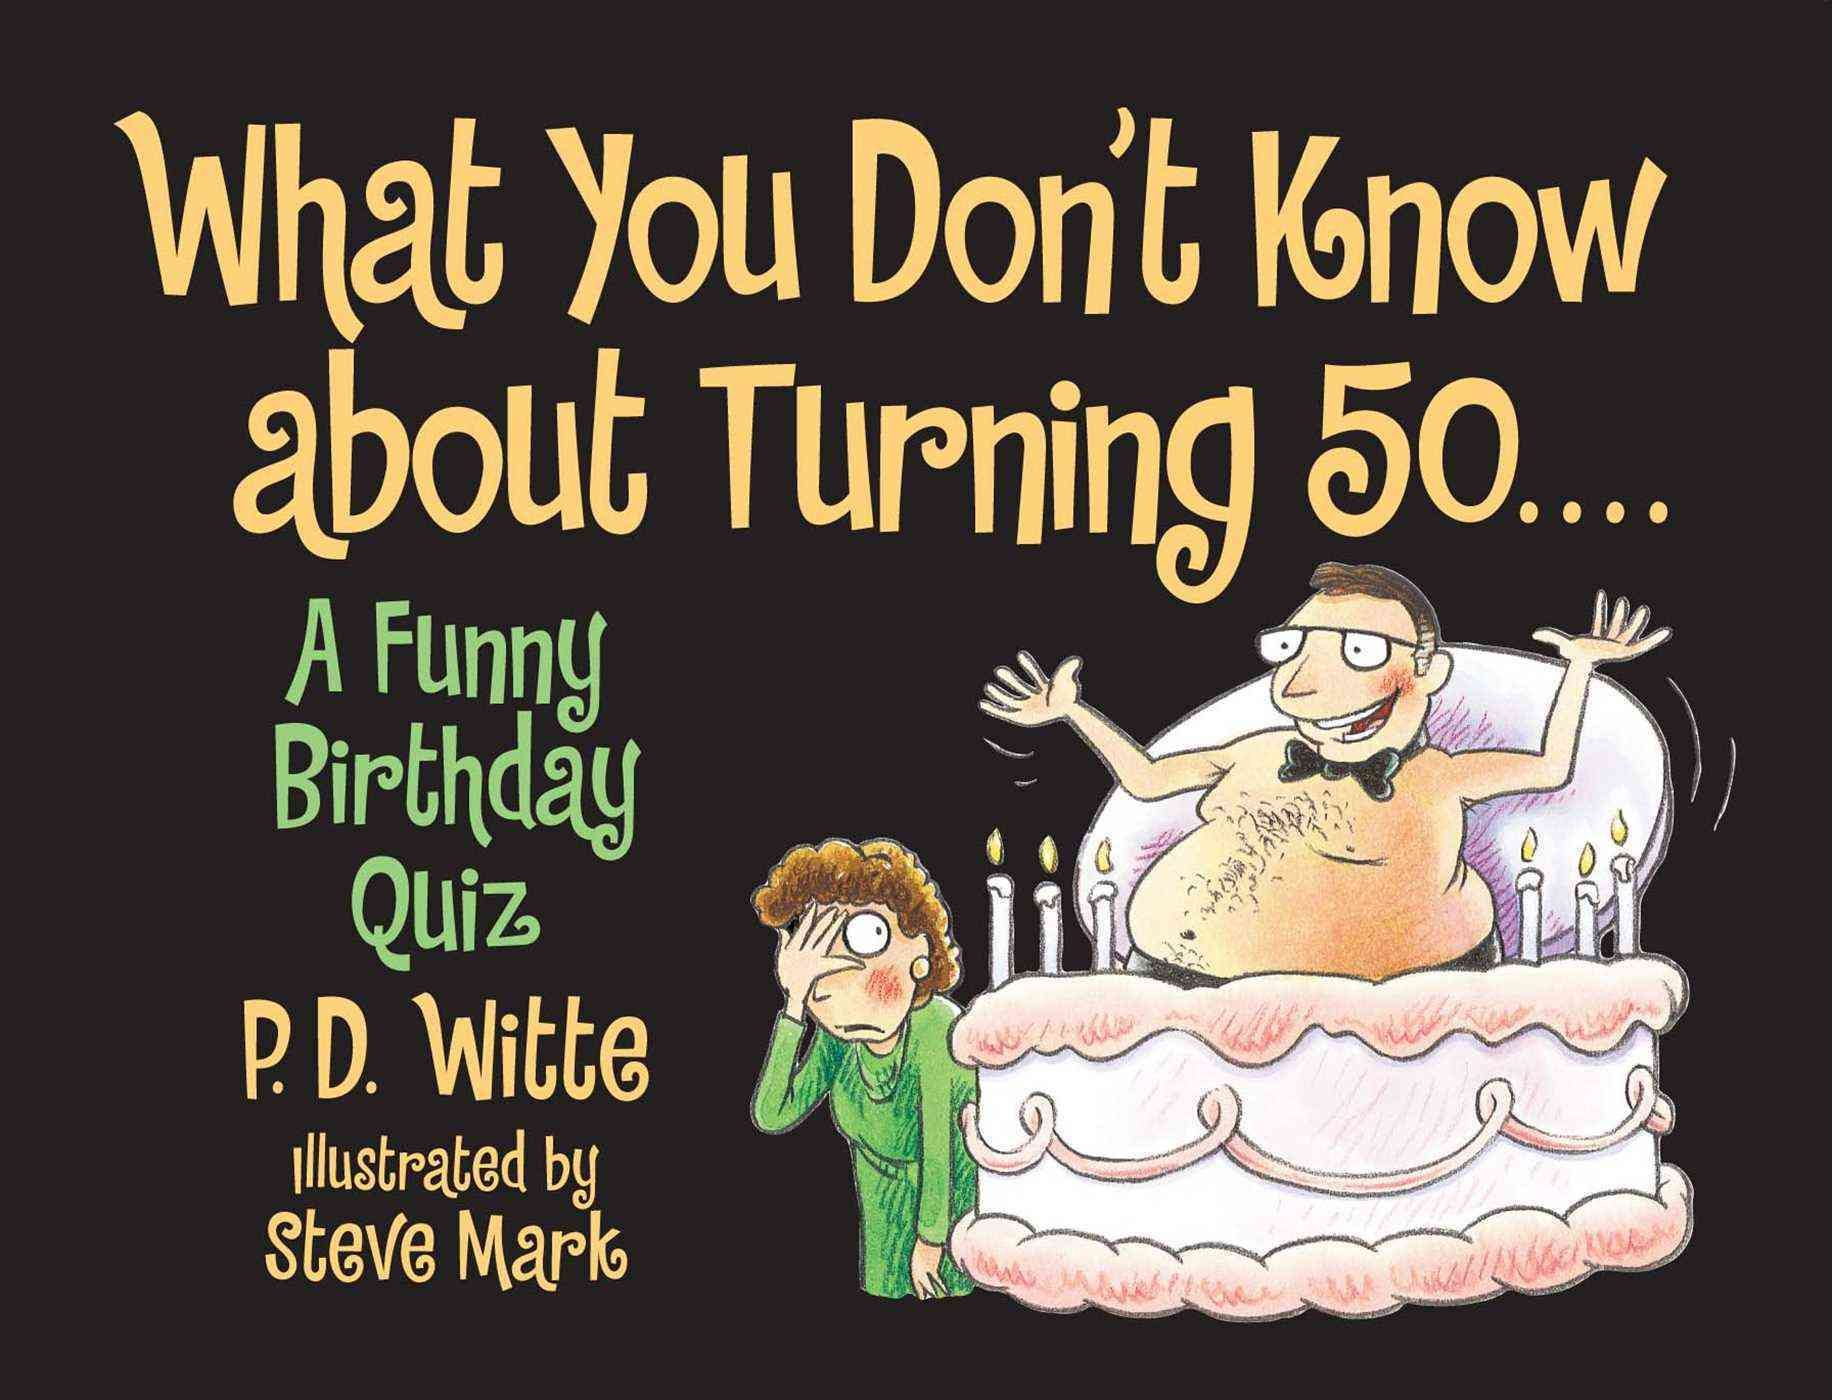 What You Don't Know About Turning 50 A Funny Birthday